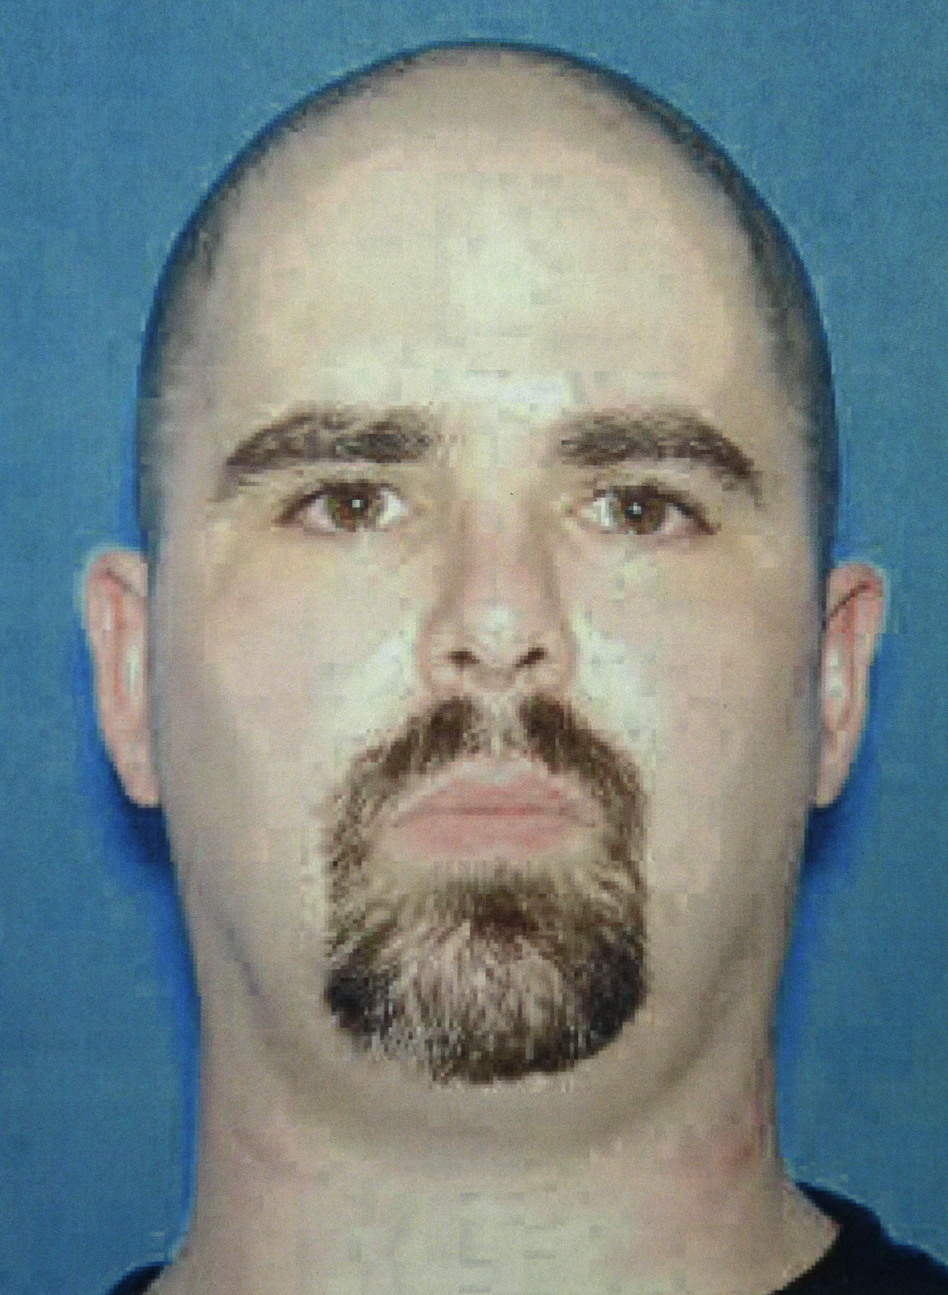 Wade Michael Page, who shot and killed six people at a Sikh temple in Oak Creek, Wis., reportedly had ties to white supremacist groups. (AP)